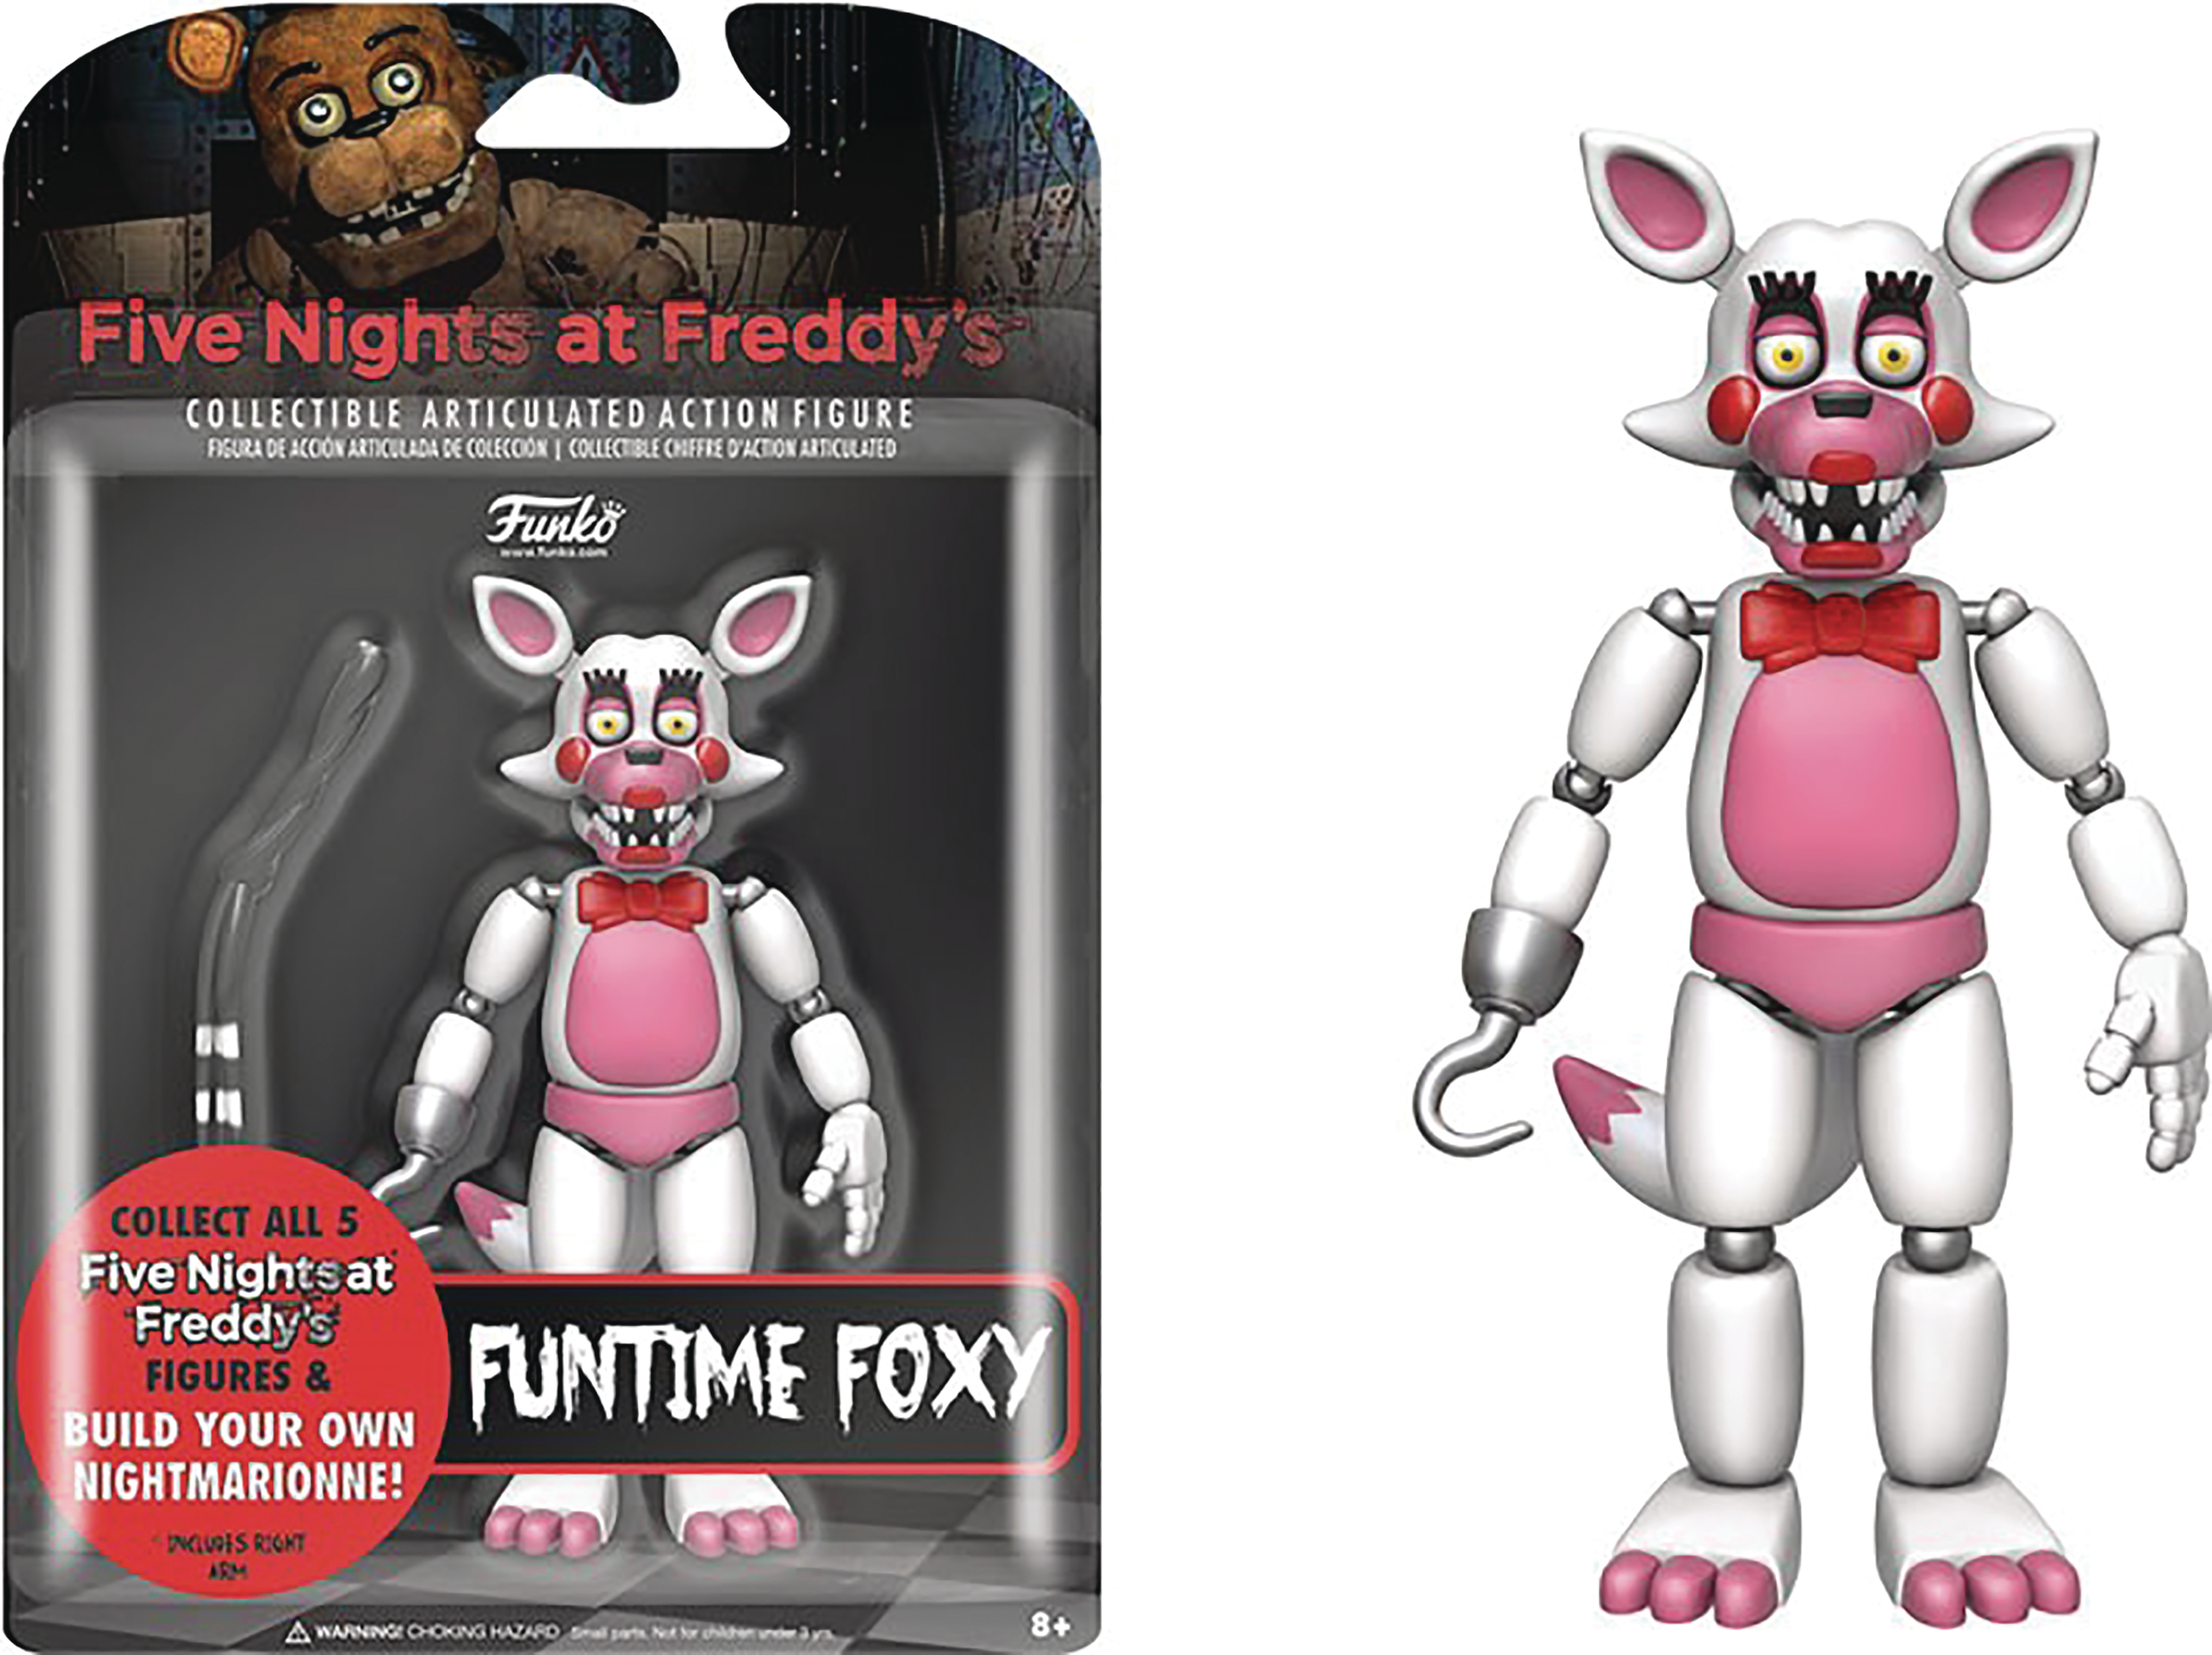 FIVE NIGHTS AT FREDDYS FUN TIME FOXY 5IN ACTION FIGURE